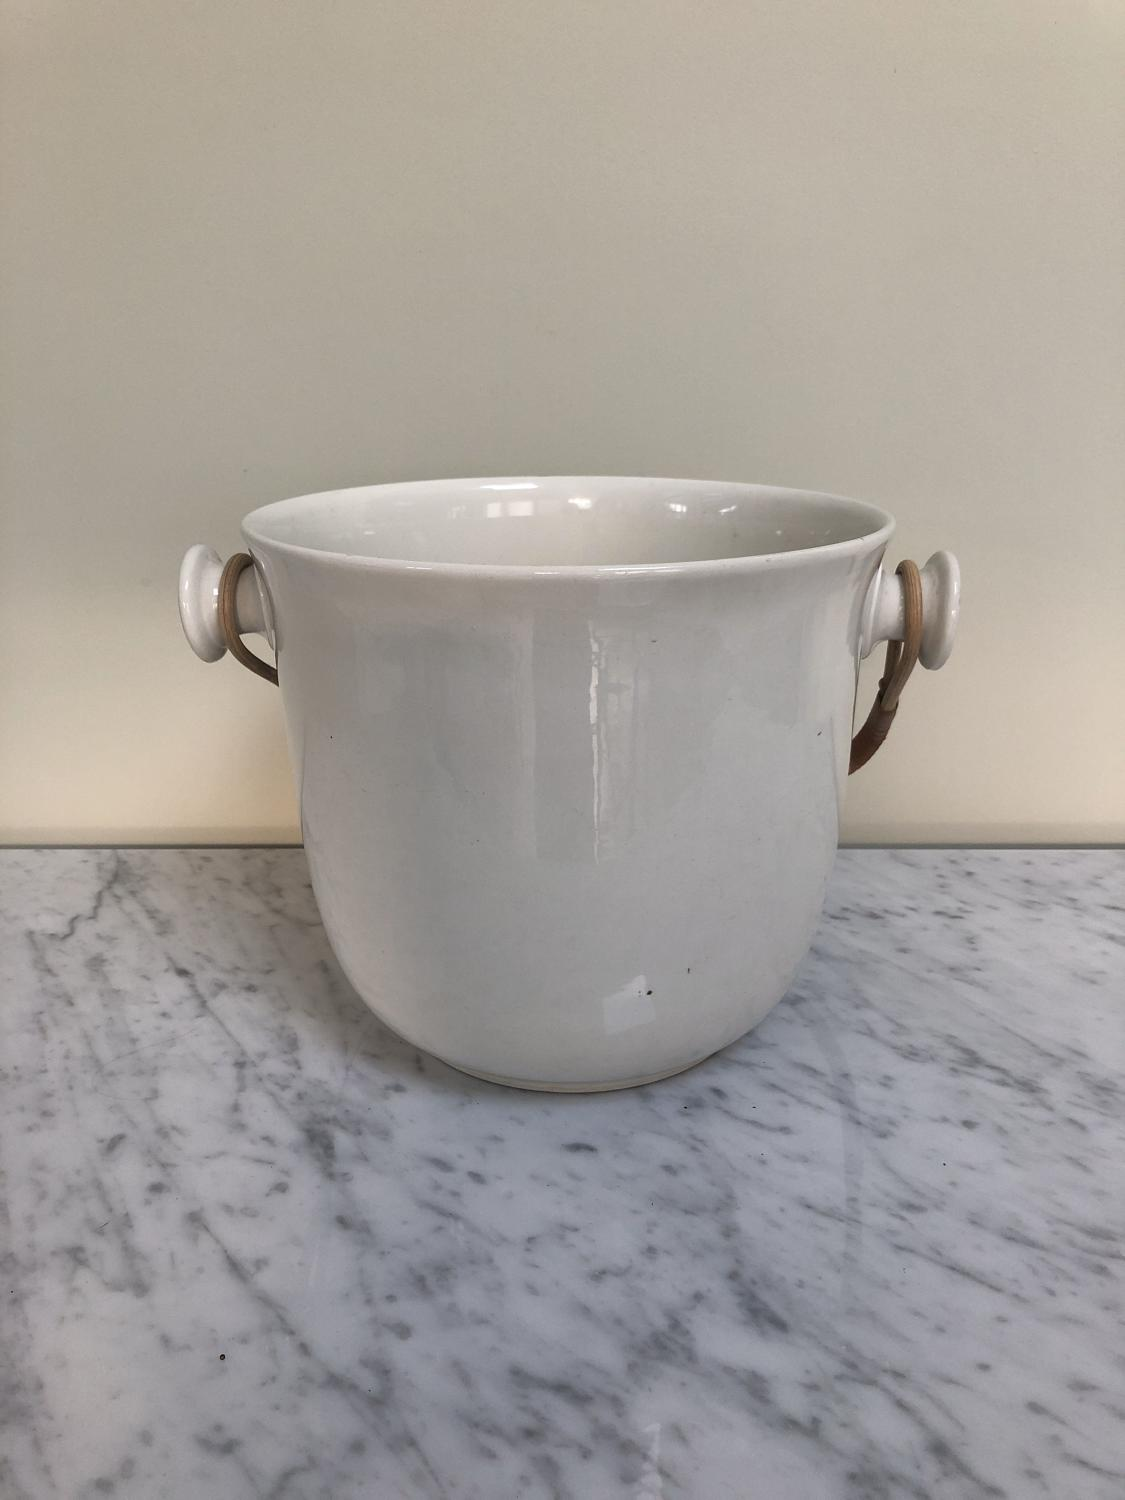 Edwardian White Ironstone Bucket - Great Ice Bucket Removable Handle